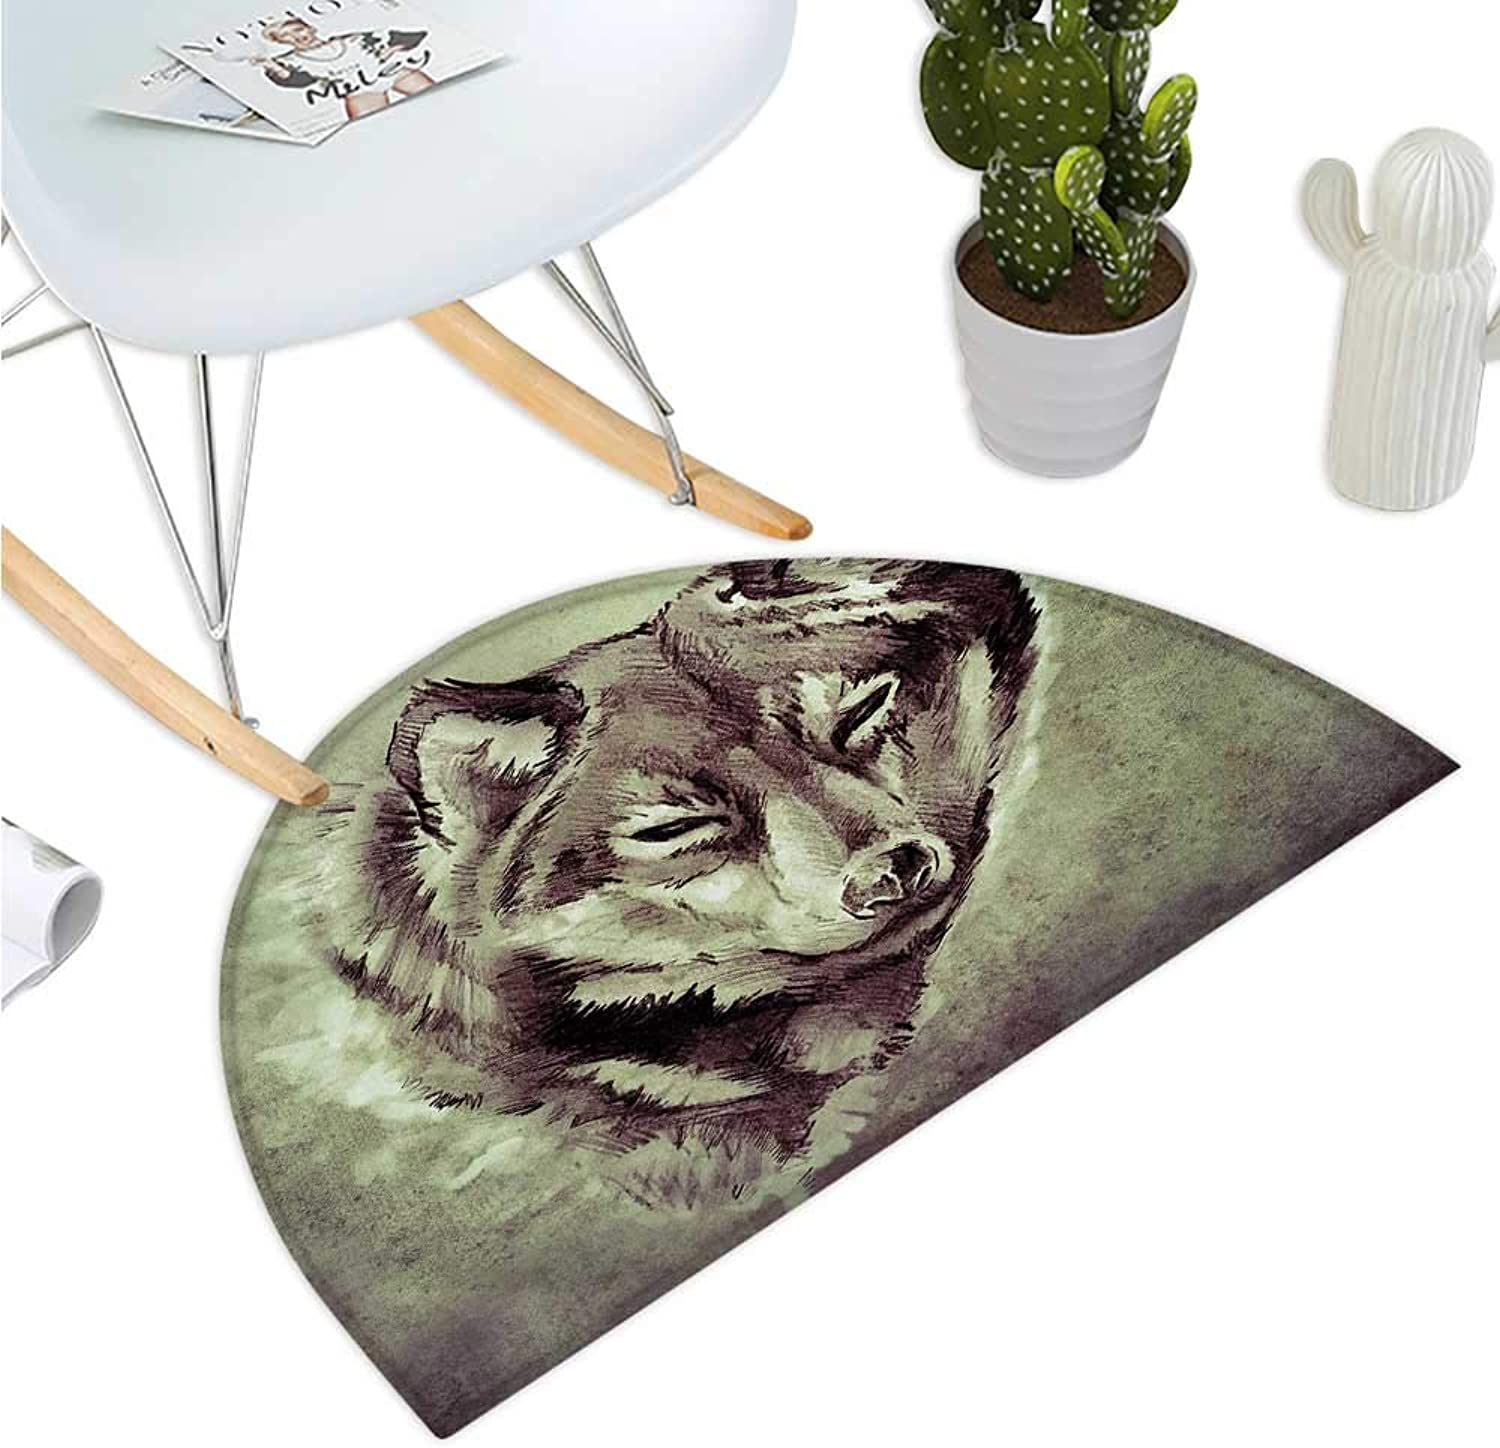 Tattoo Half Round Door mats Head of Wolf The Fierce Warrior Big Dog of The Forest Winter Season Theme Image Entry Door Mat H 39.3  xD 59  White and Black